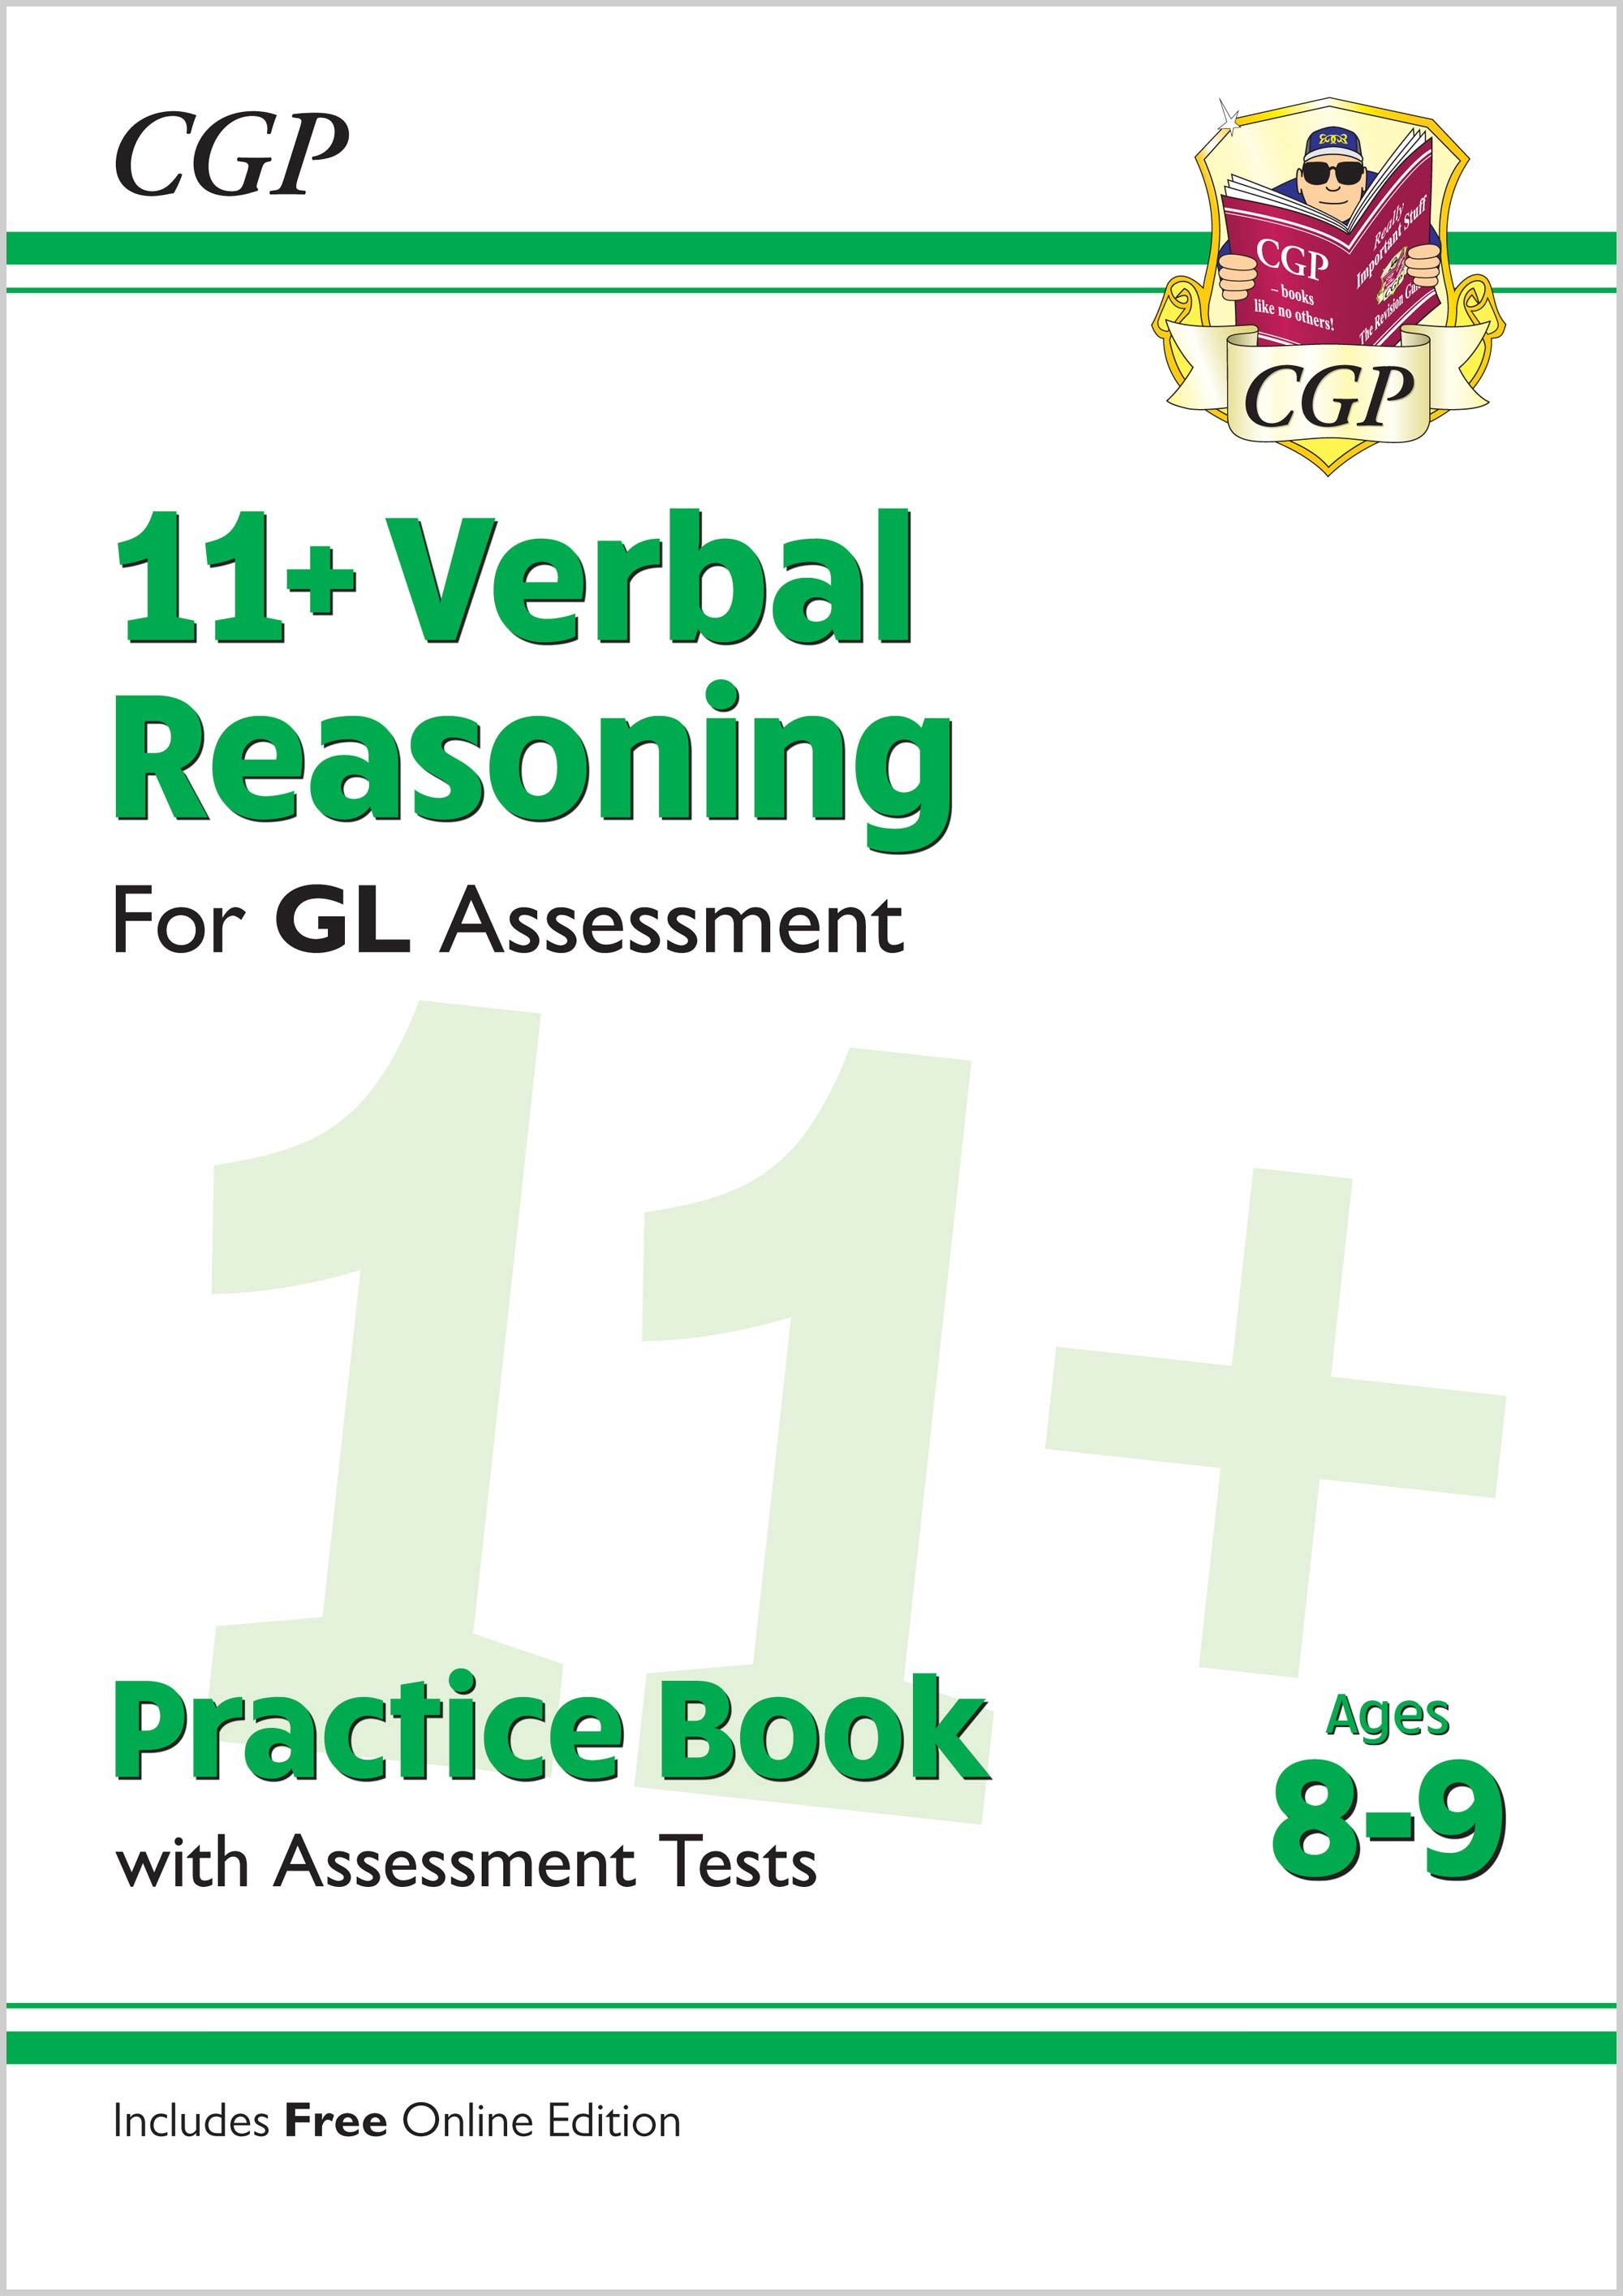 V4QE2 - 11+ GL Verbal Reasoning Practice Book & Assessment Tests - Ages 8-9 (with Online Edition)